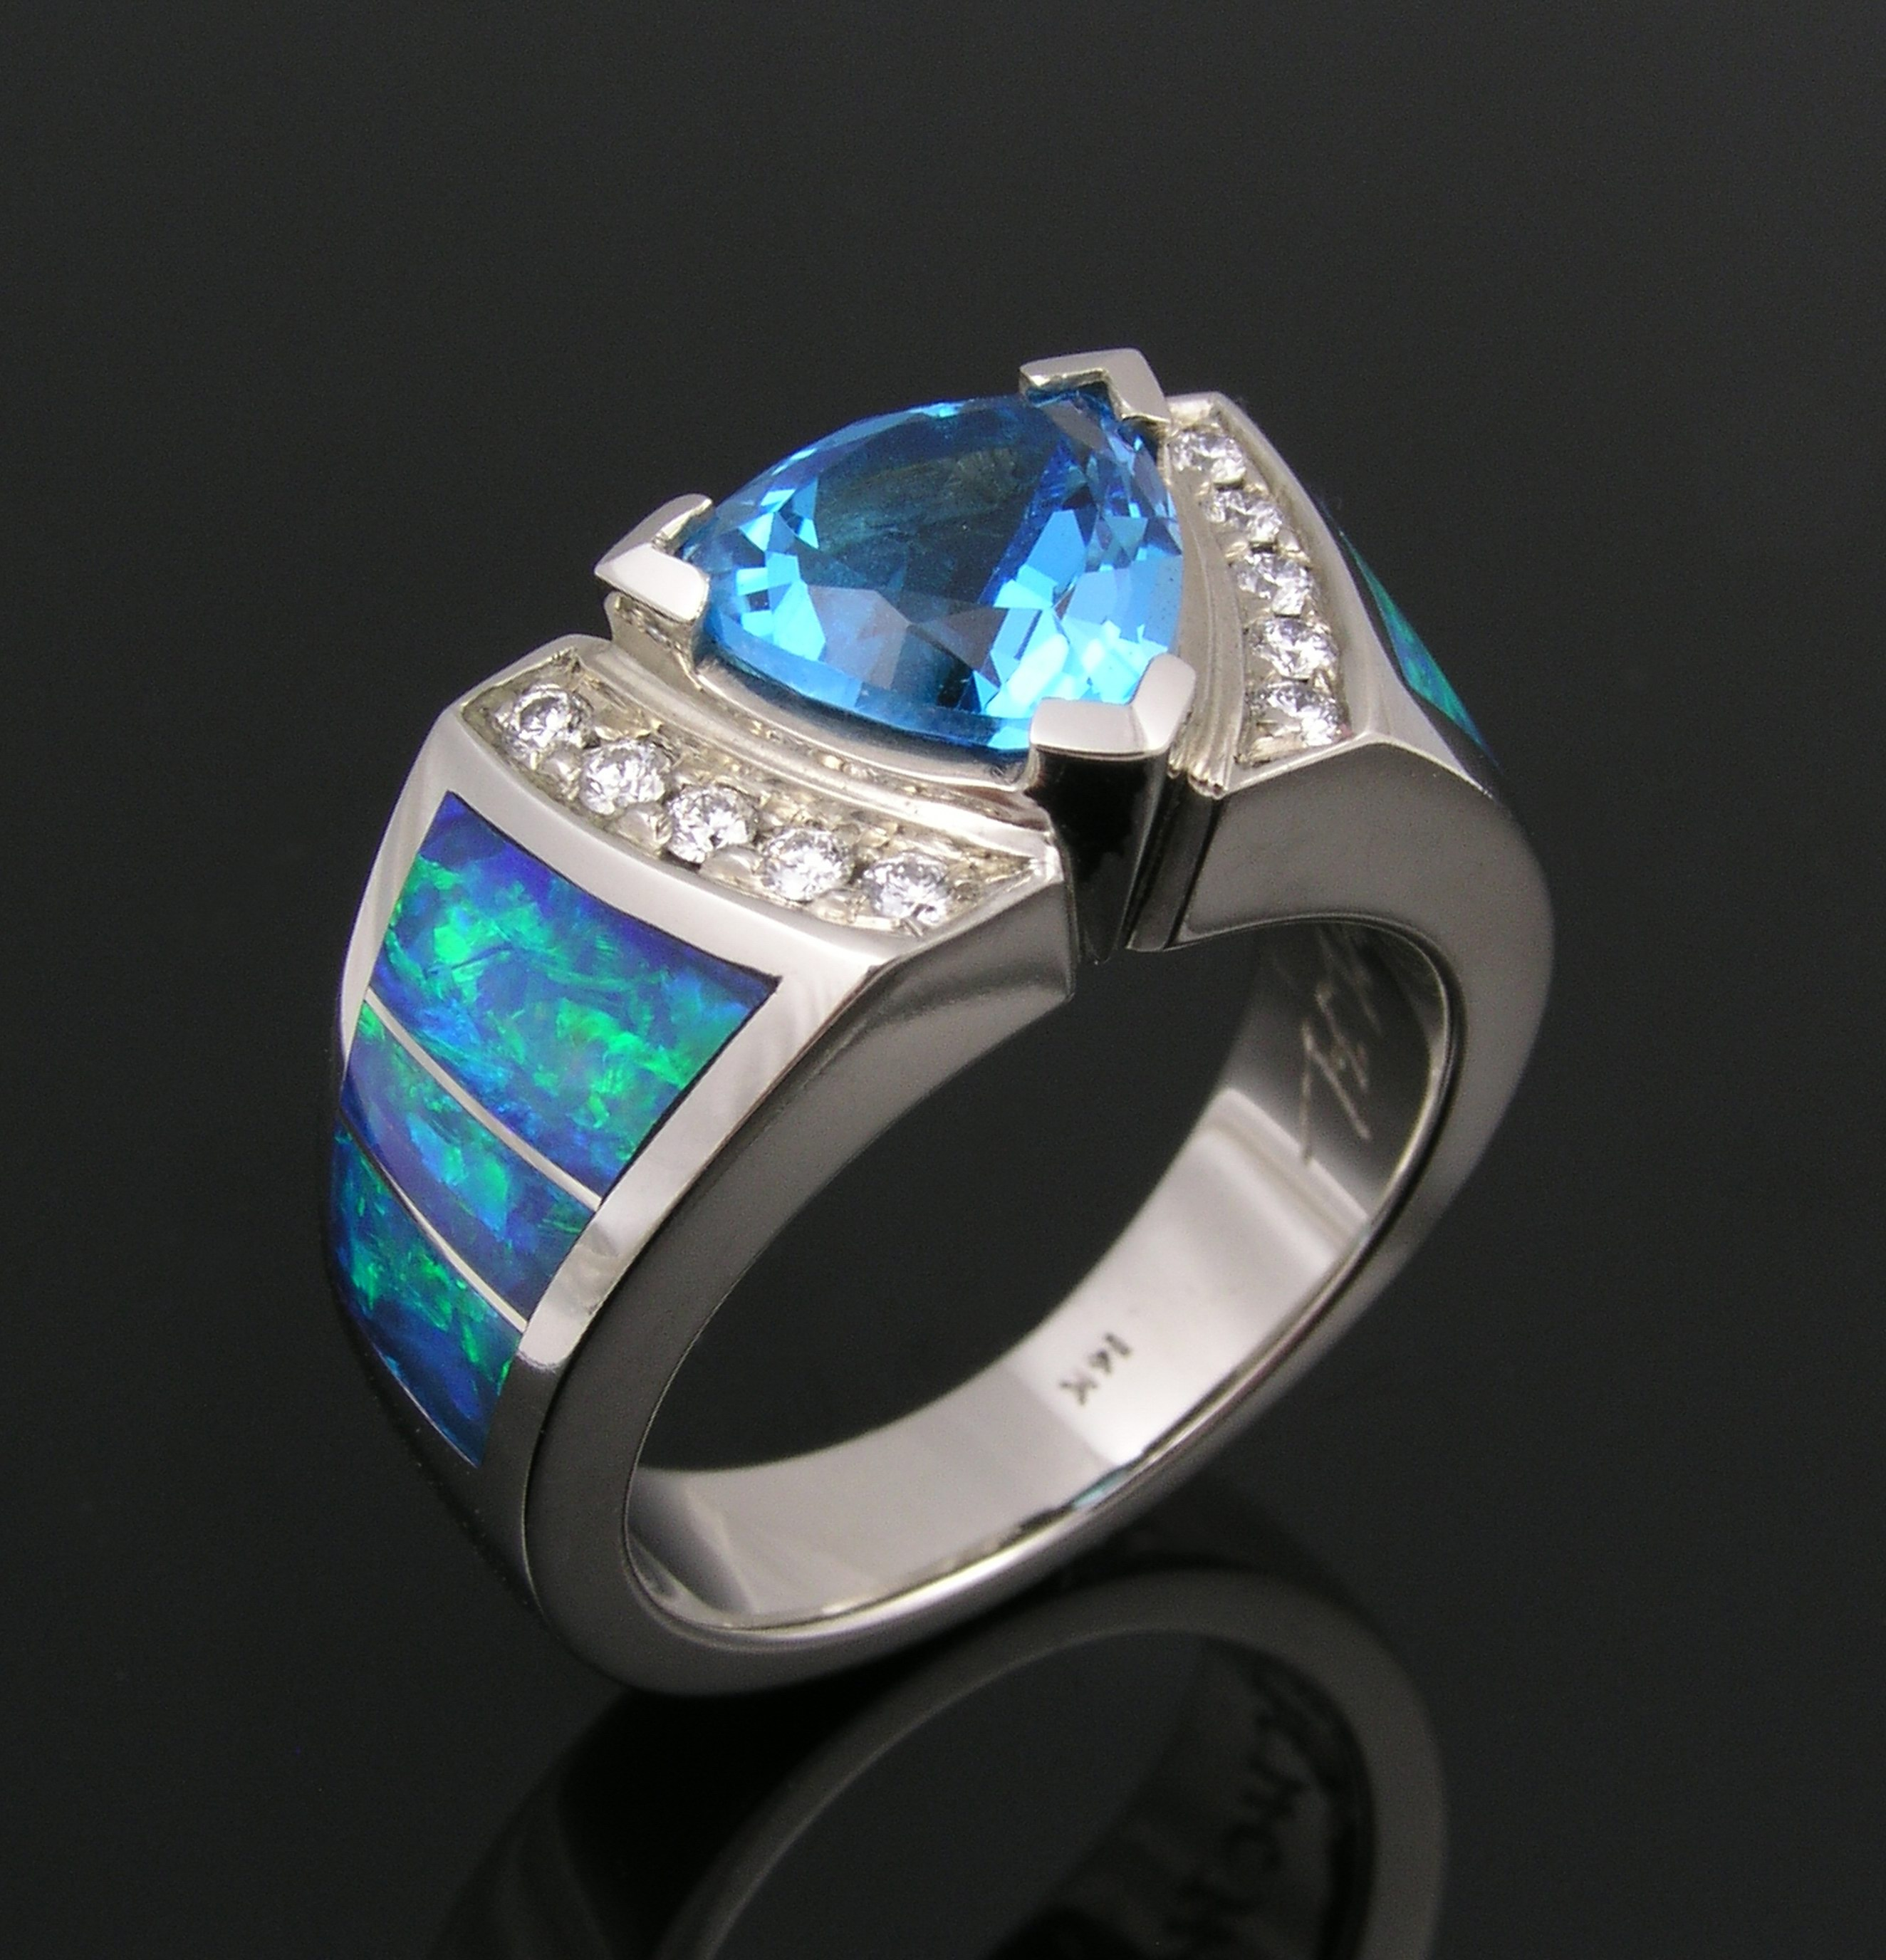 Australian opal ring with trillion topaz and diamonds in white gold by The Hileman Collection.